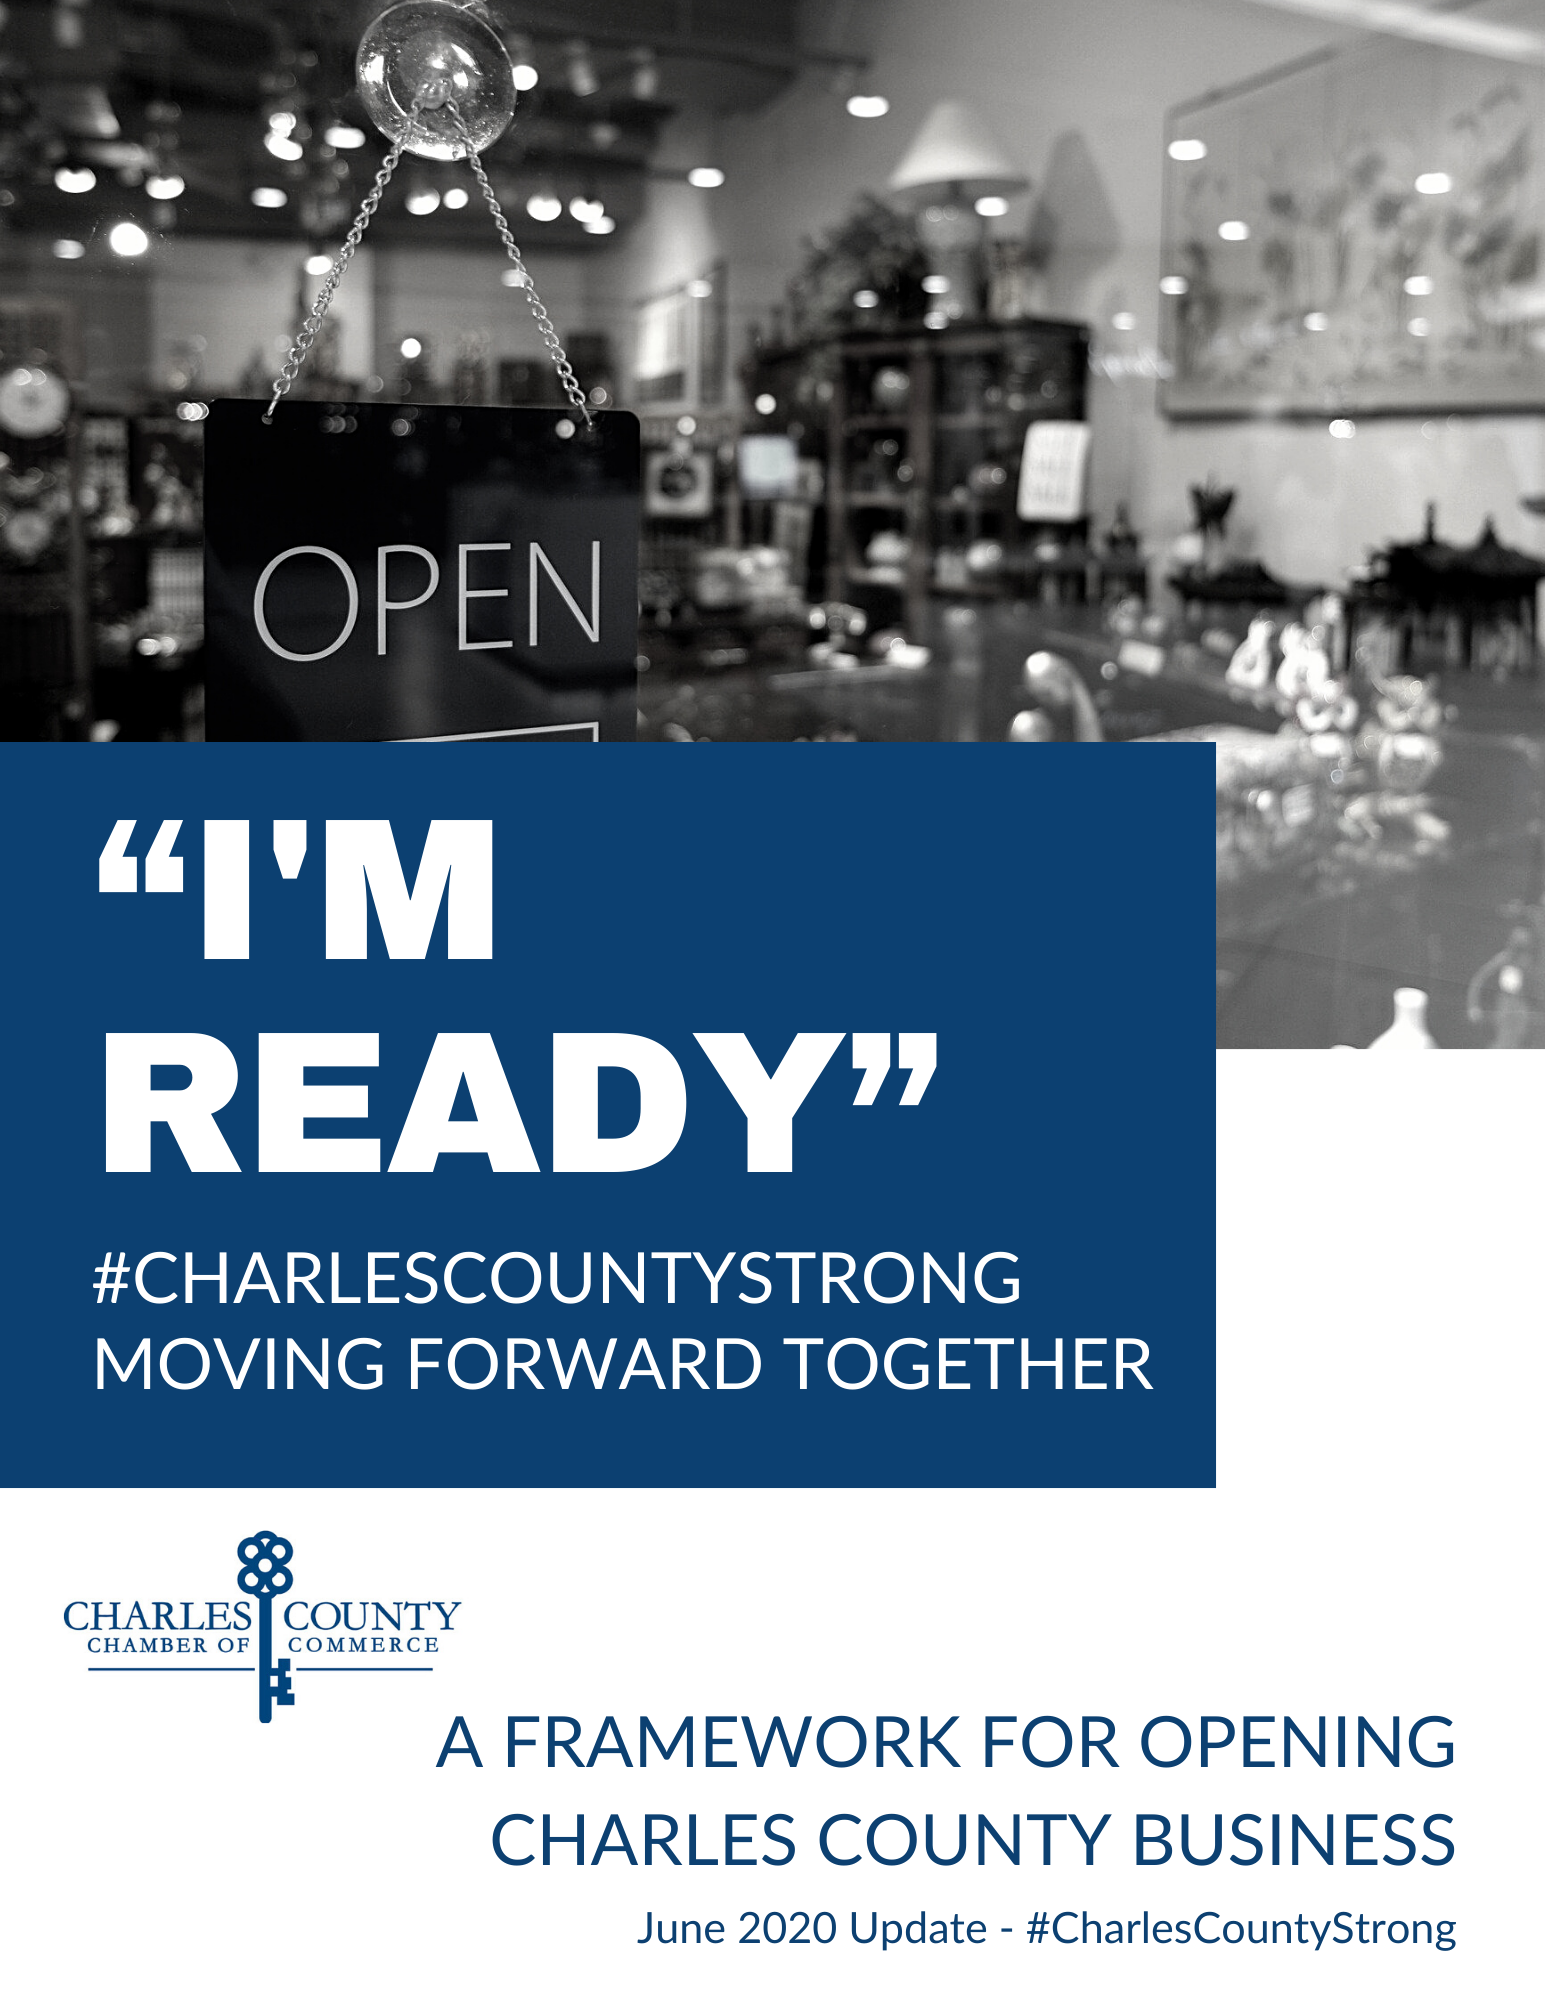 A Framework for Opening Charles County Business - Phase 2